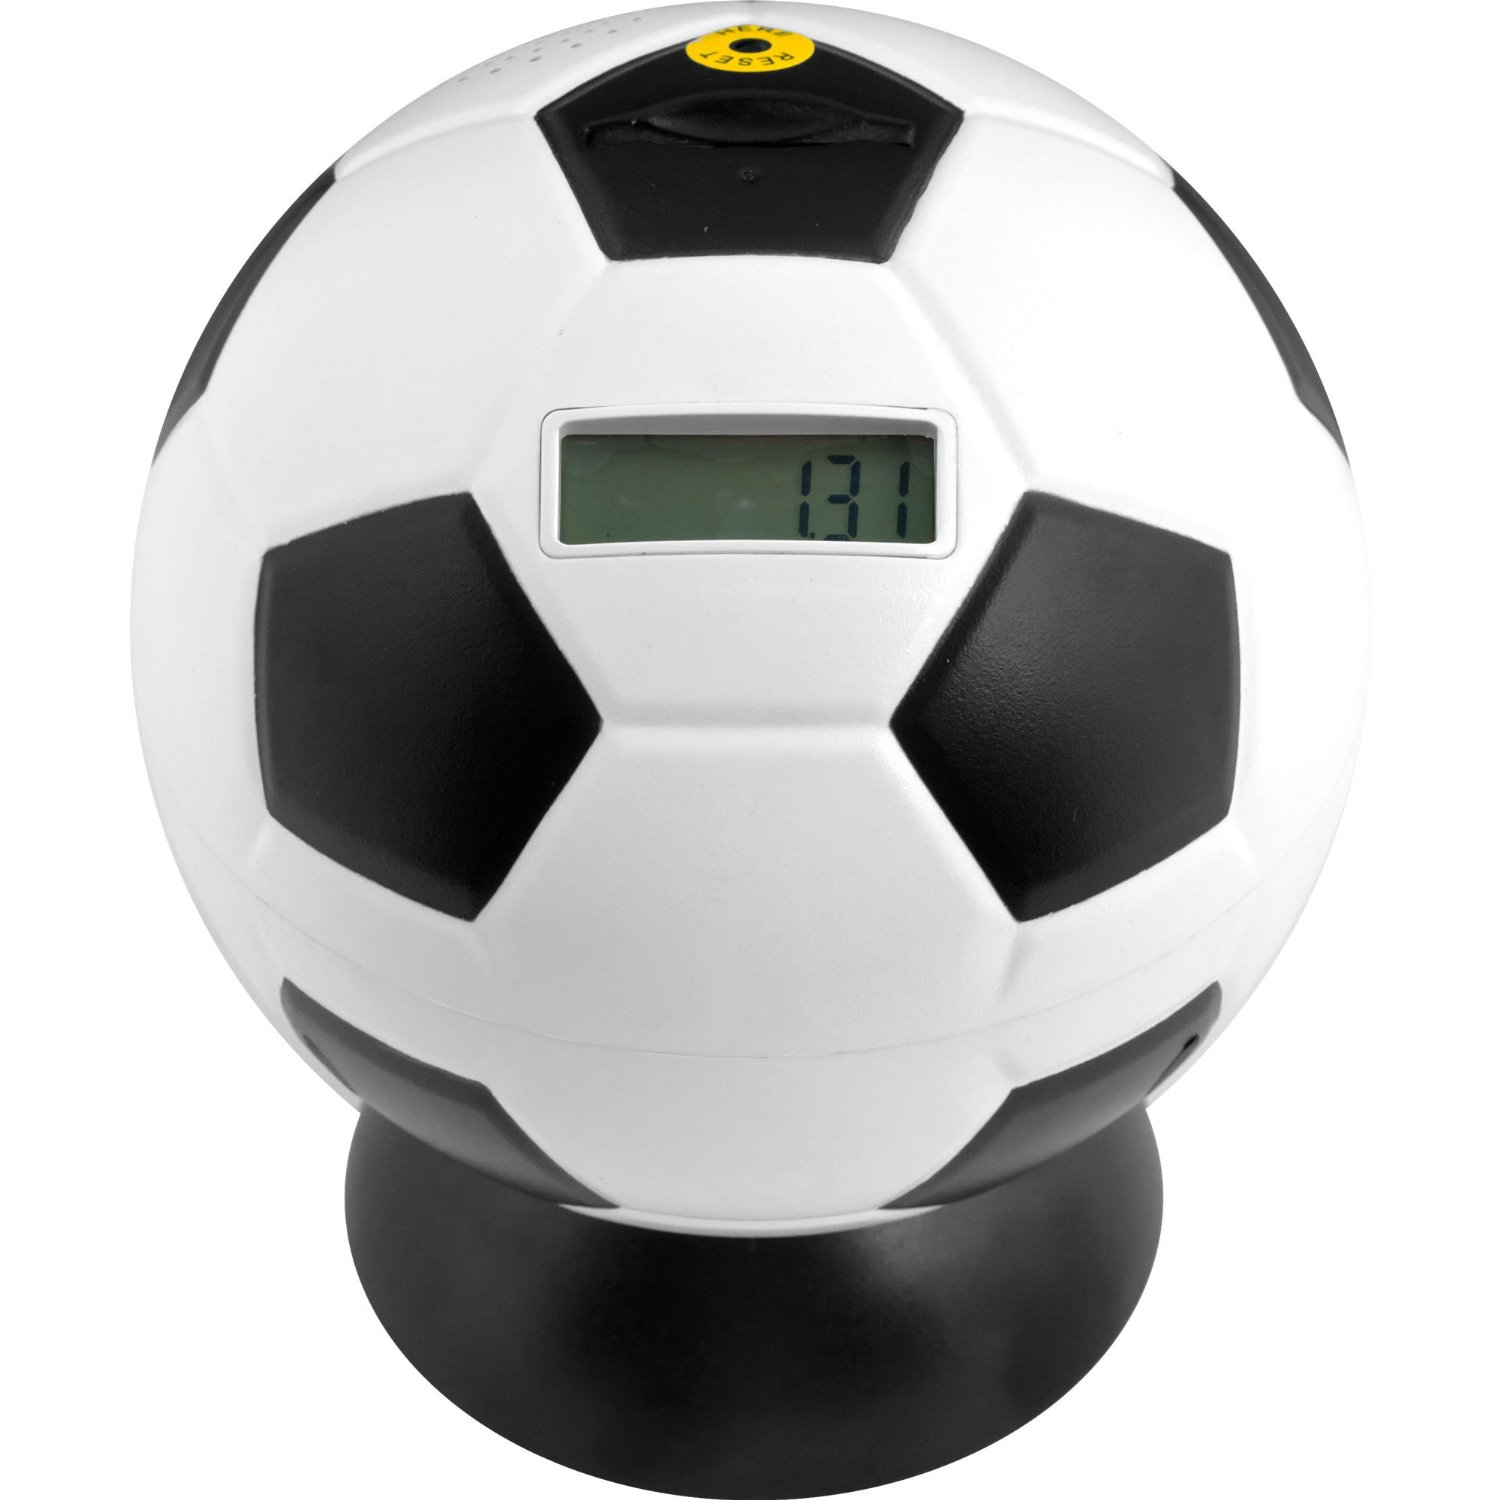 Piggy Bank With Counter Soccer Ball Digital Coin Counting Bank Only 5 29 Reg